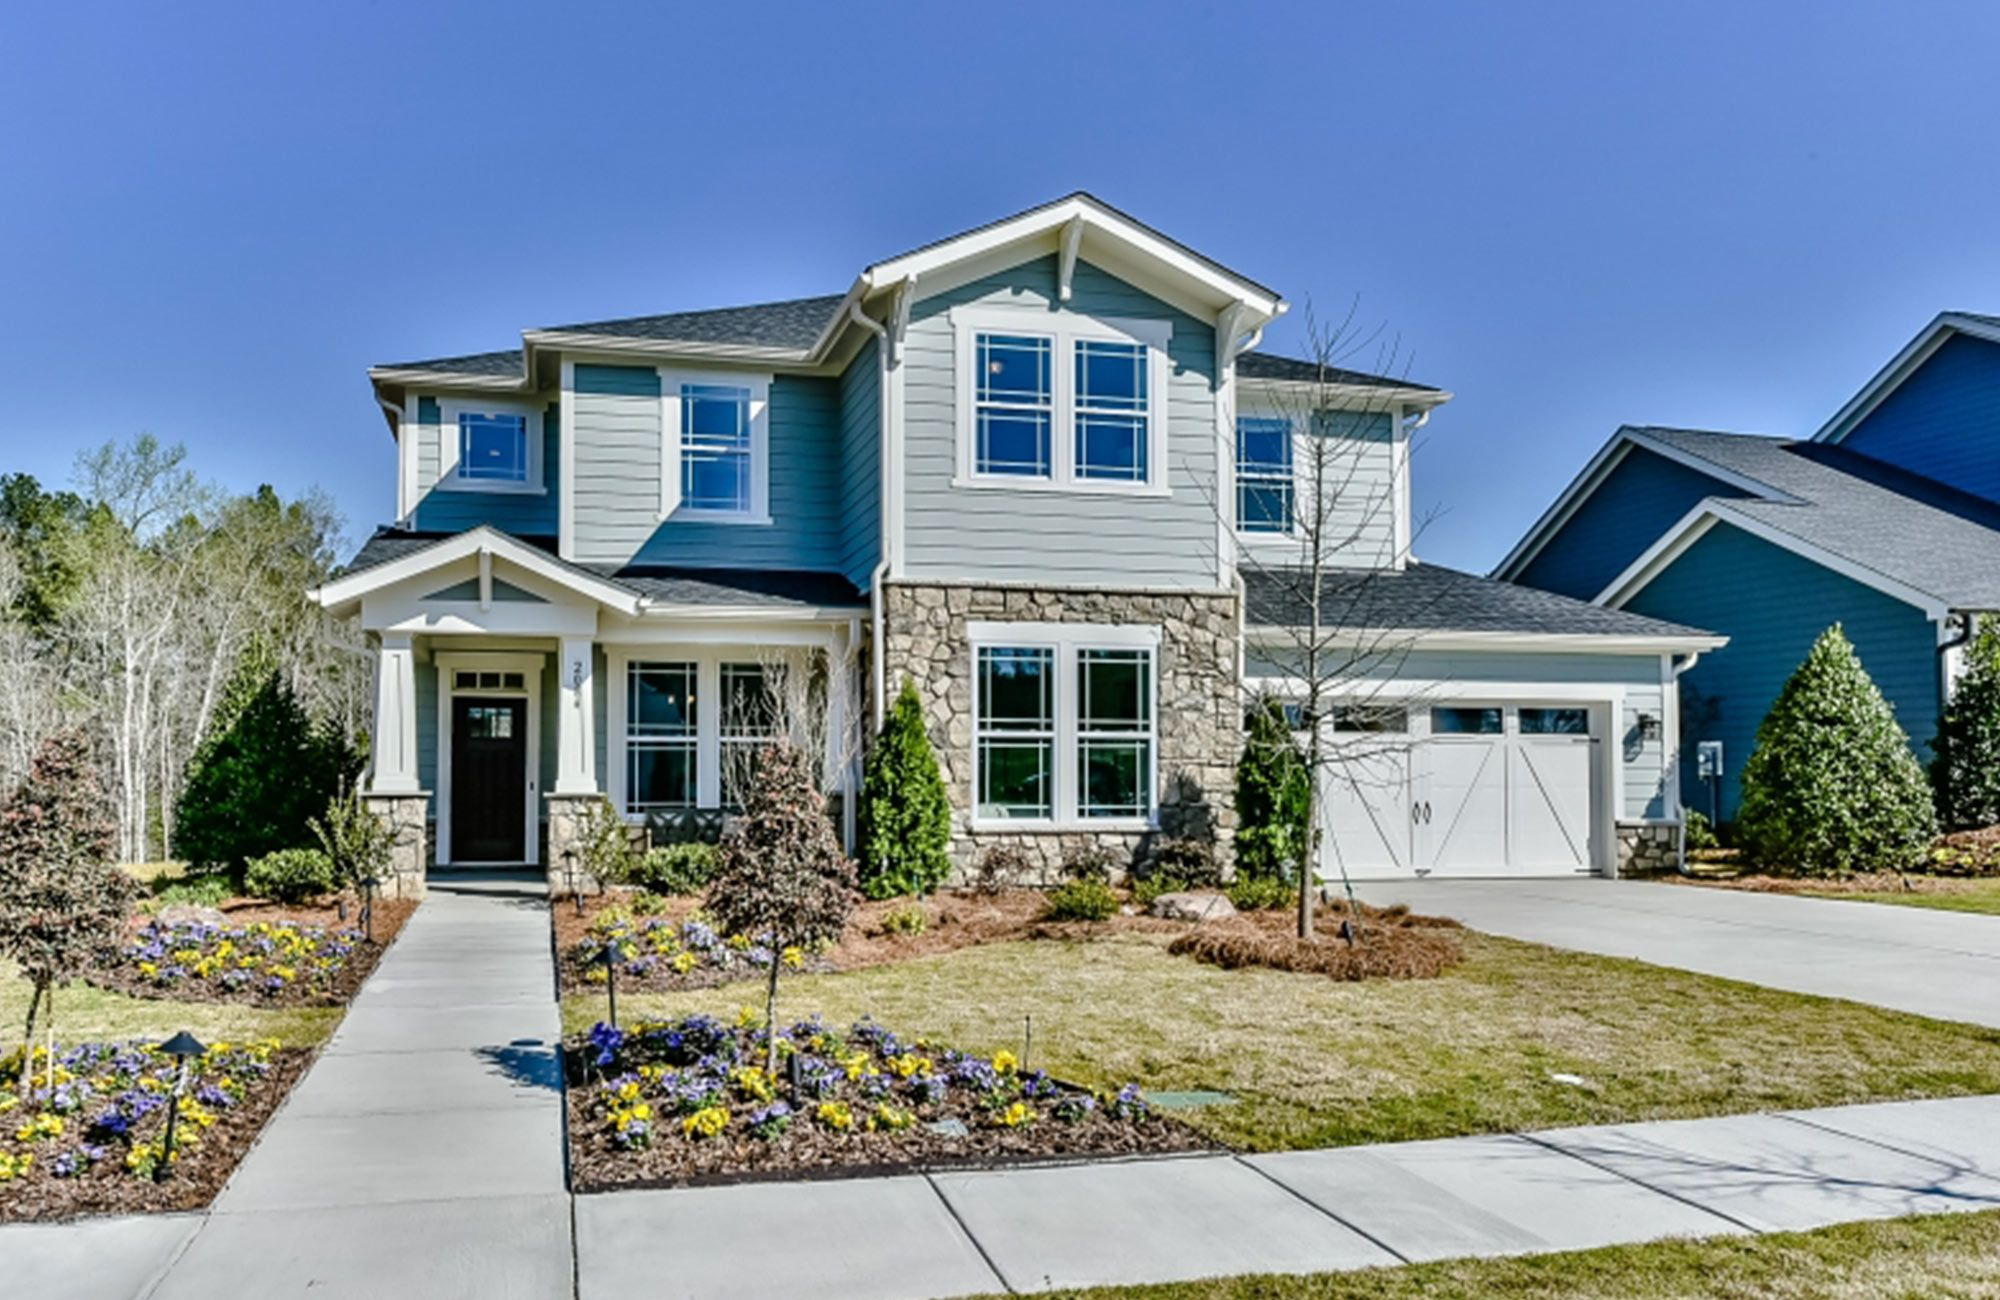 'Paddlers Cove' by Fielding Homes - Charlotte Metro Area in Charlotte